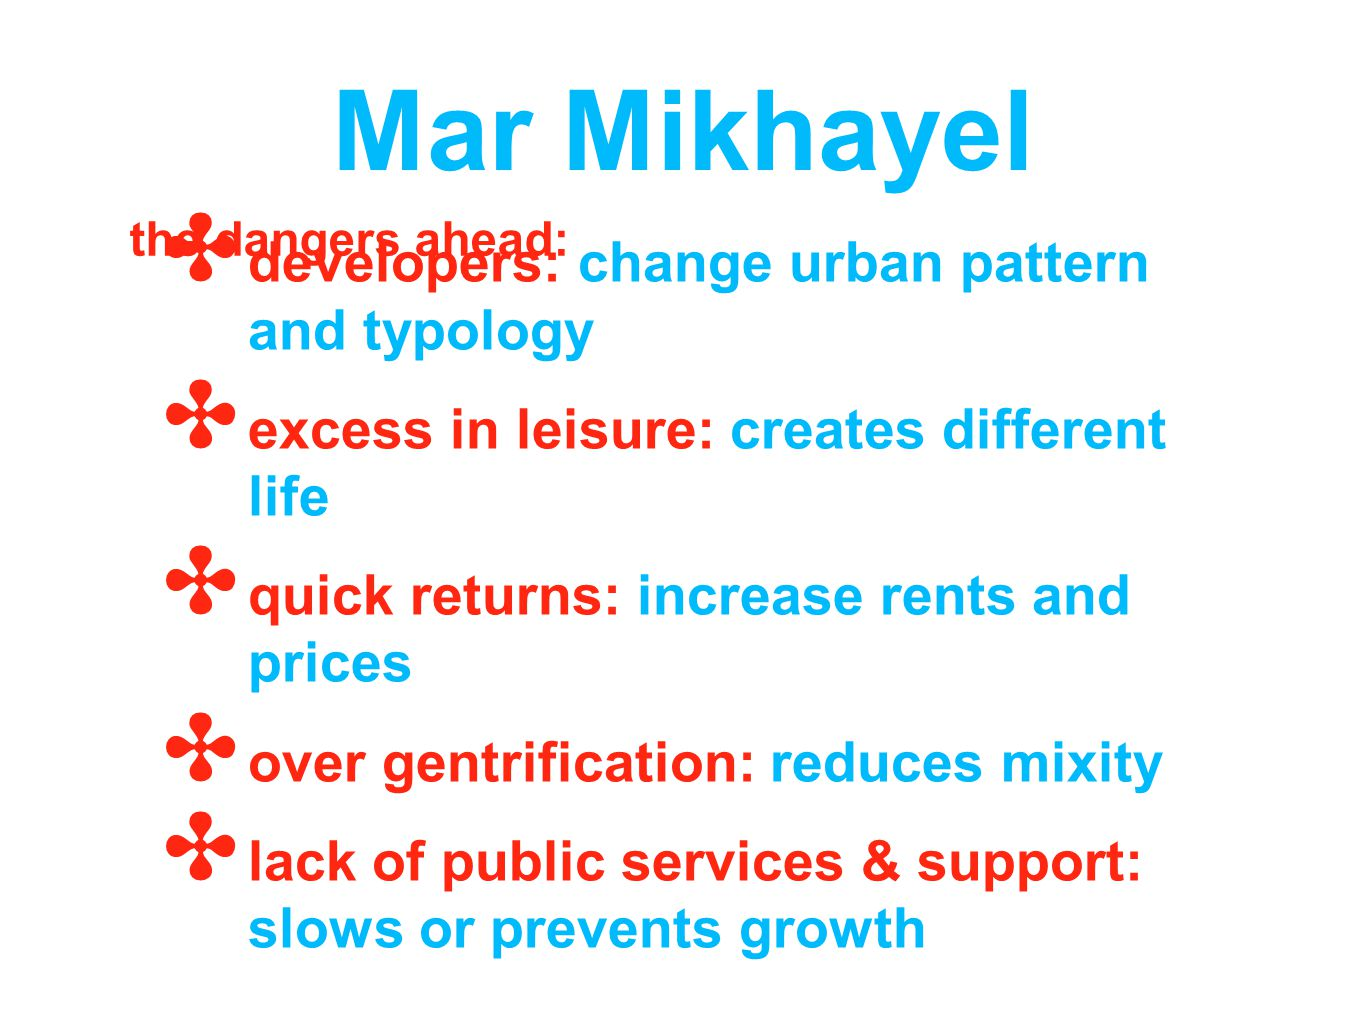 Mar Mikhayel developers: change urban pattern and typology excess in leisure: creates different life quick returns: increase rents and prices over gentrification: reduces mixity lack of public services & support: slows or prevents growth the dangers ahead: